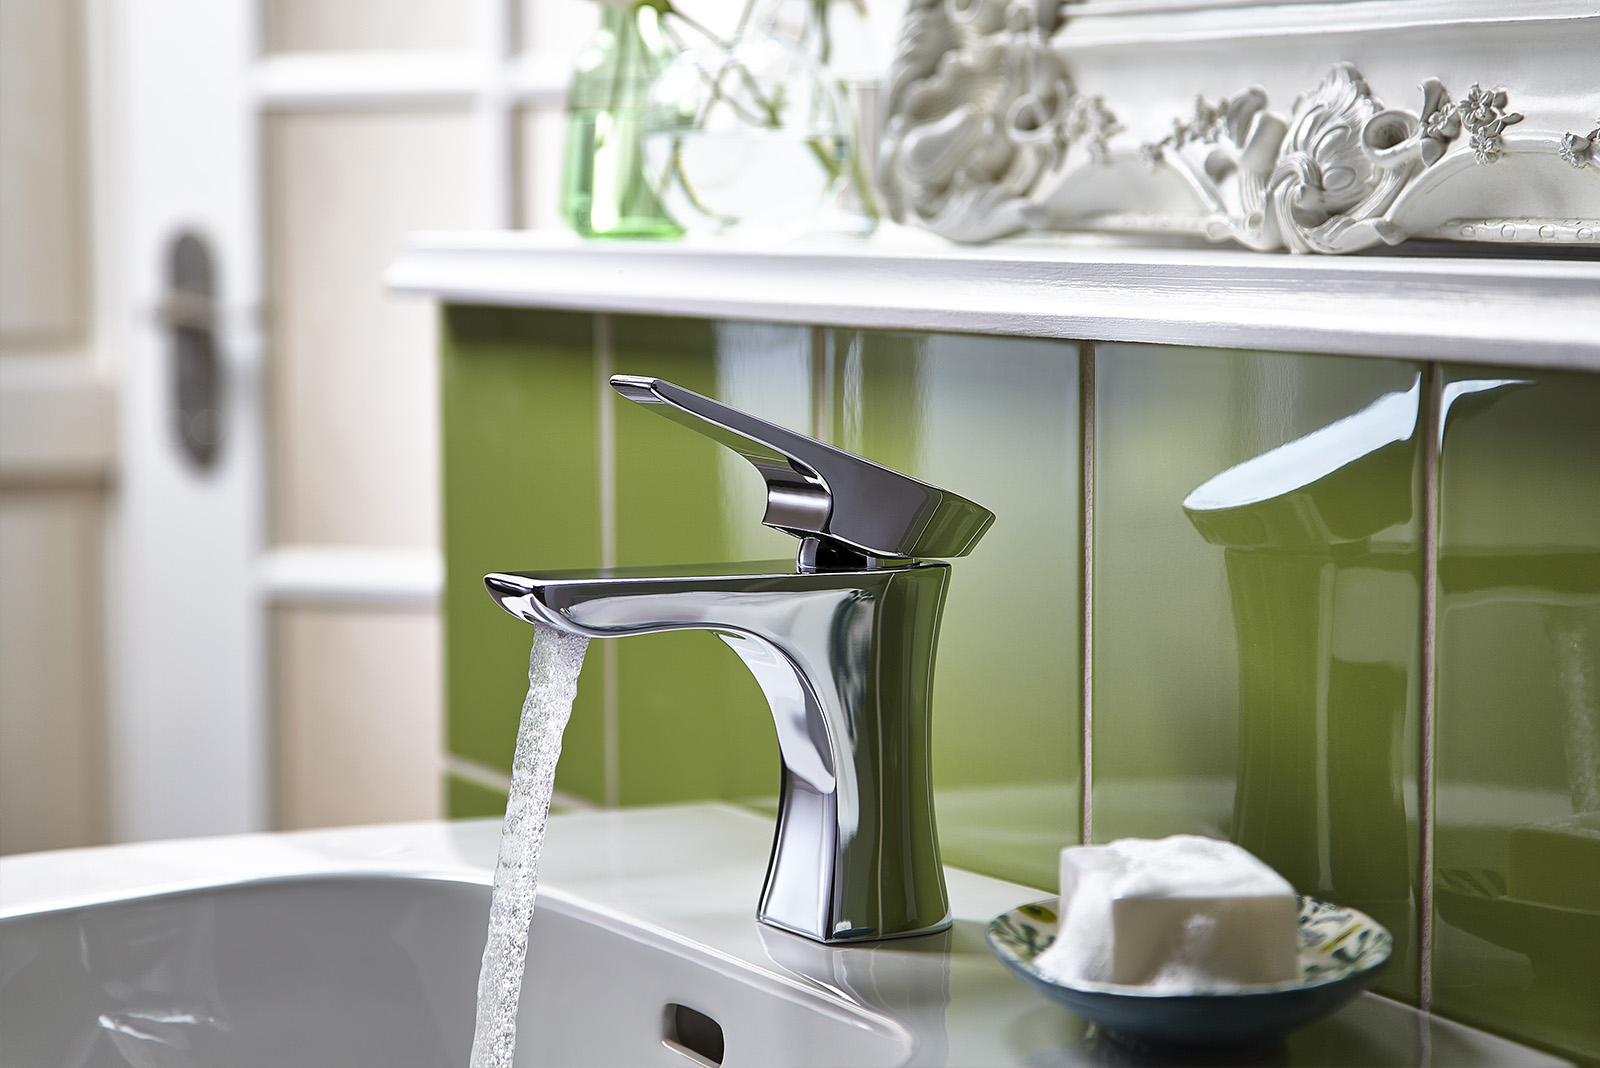 Bristan updates mixer tap design